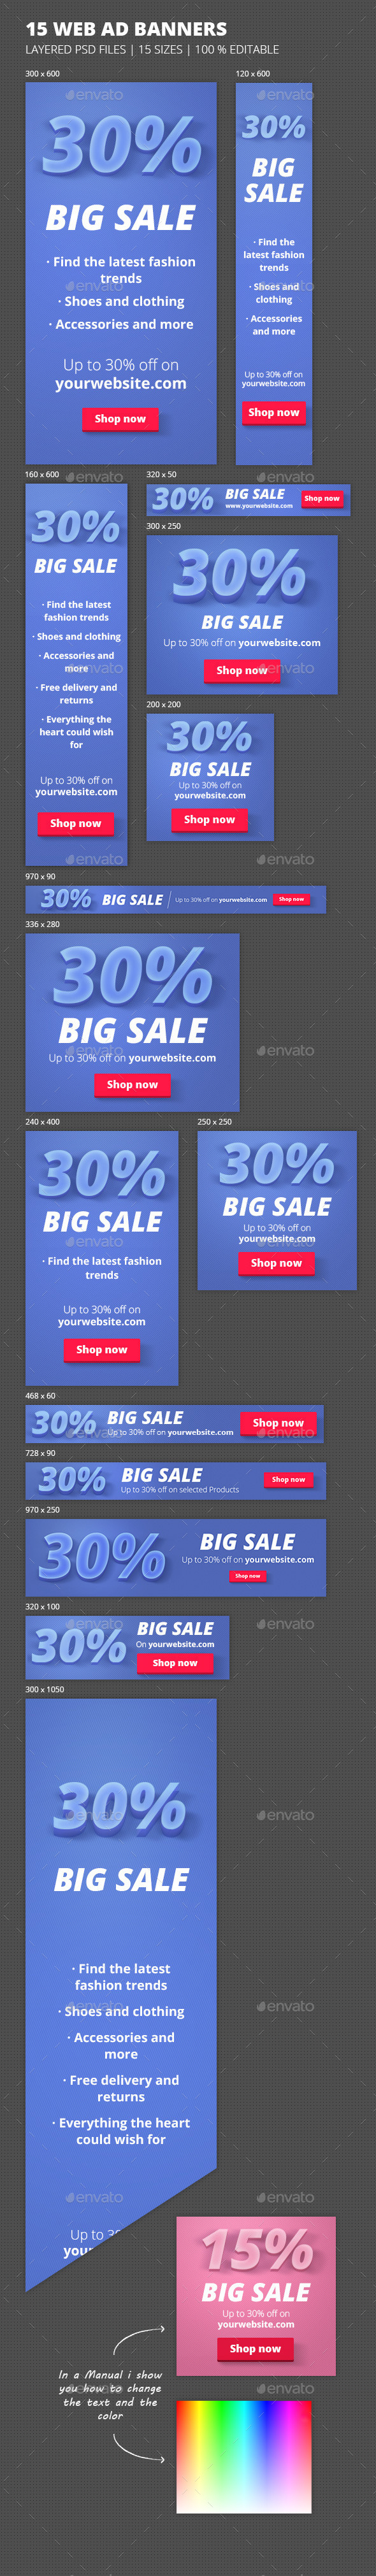 Online Marketing 'Big Sale' Banners  - Banners & Ads Web Elements